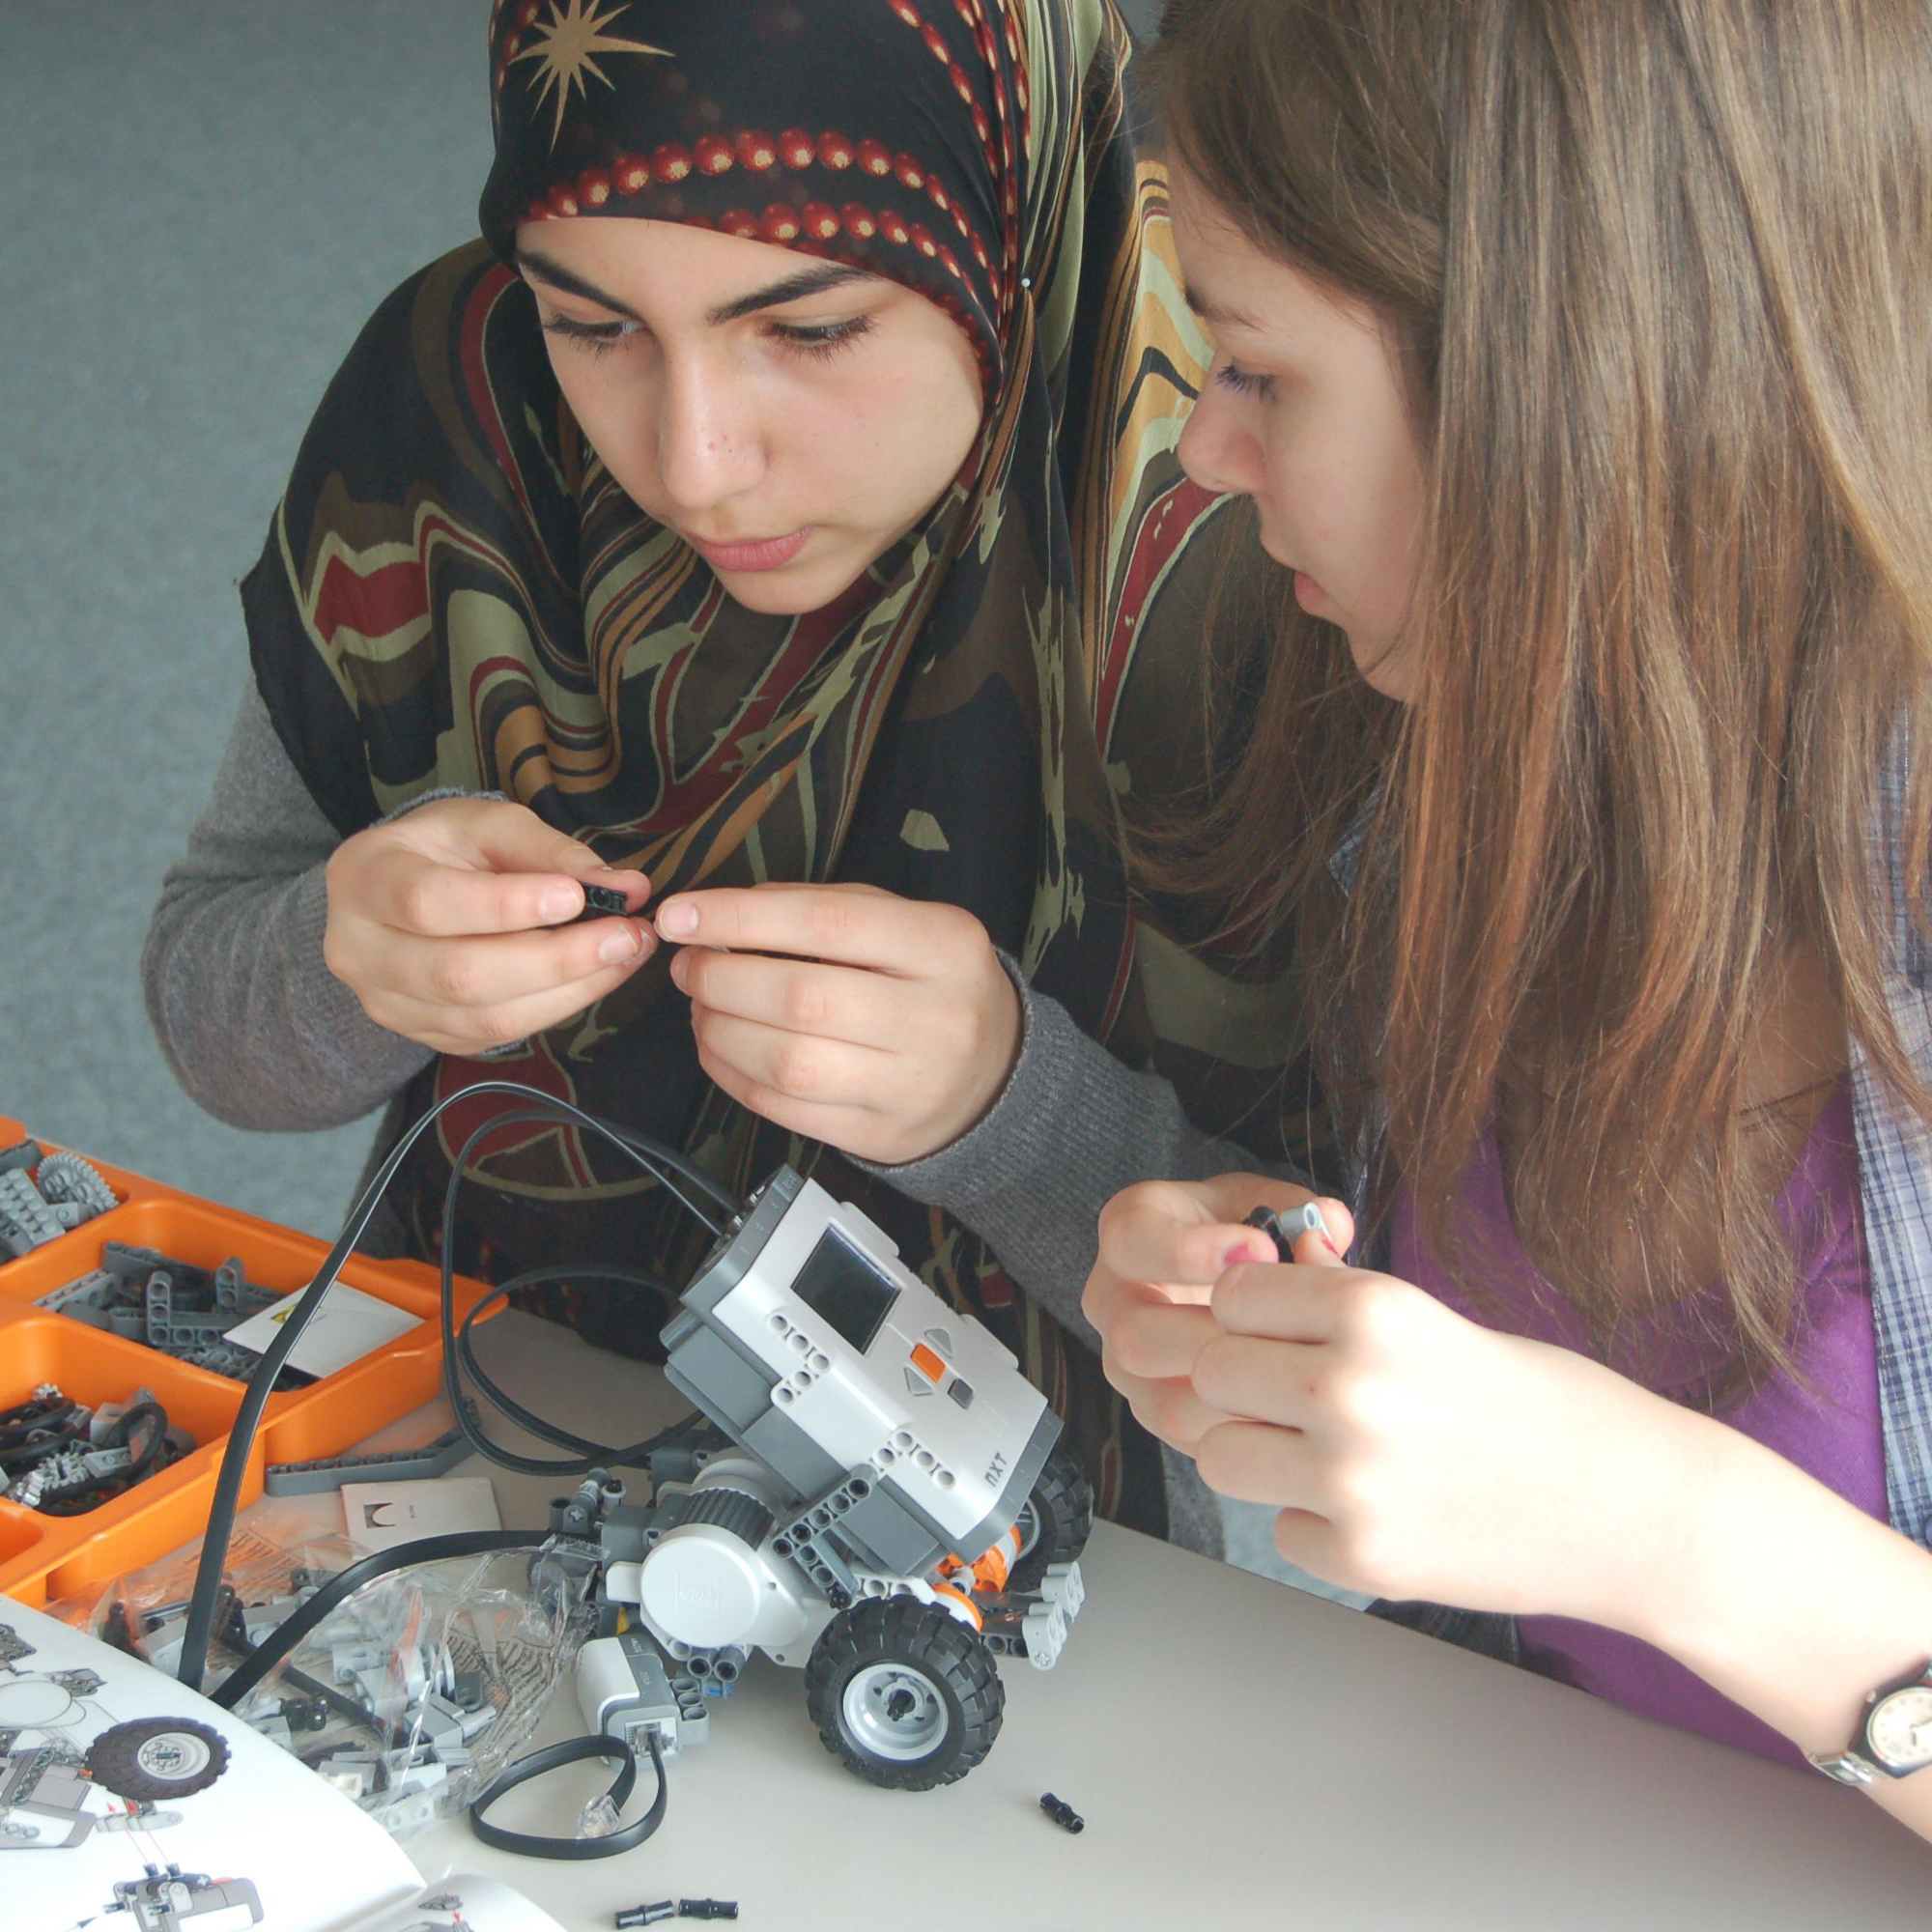 Two female pupils building a robot